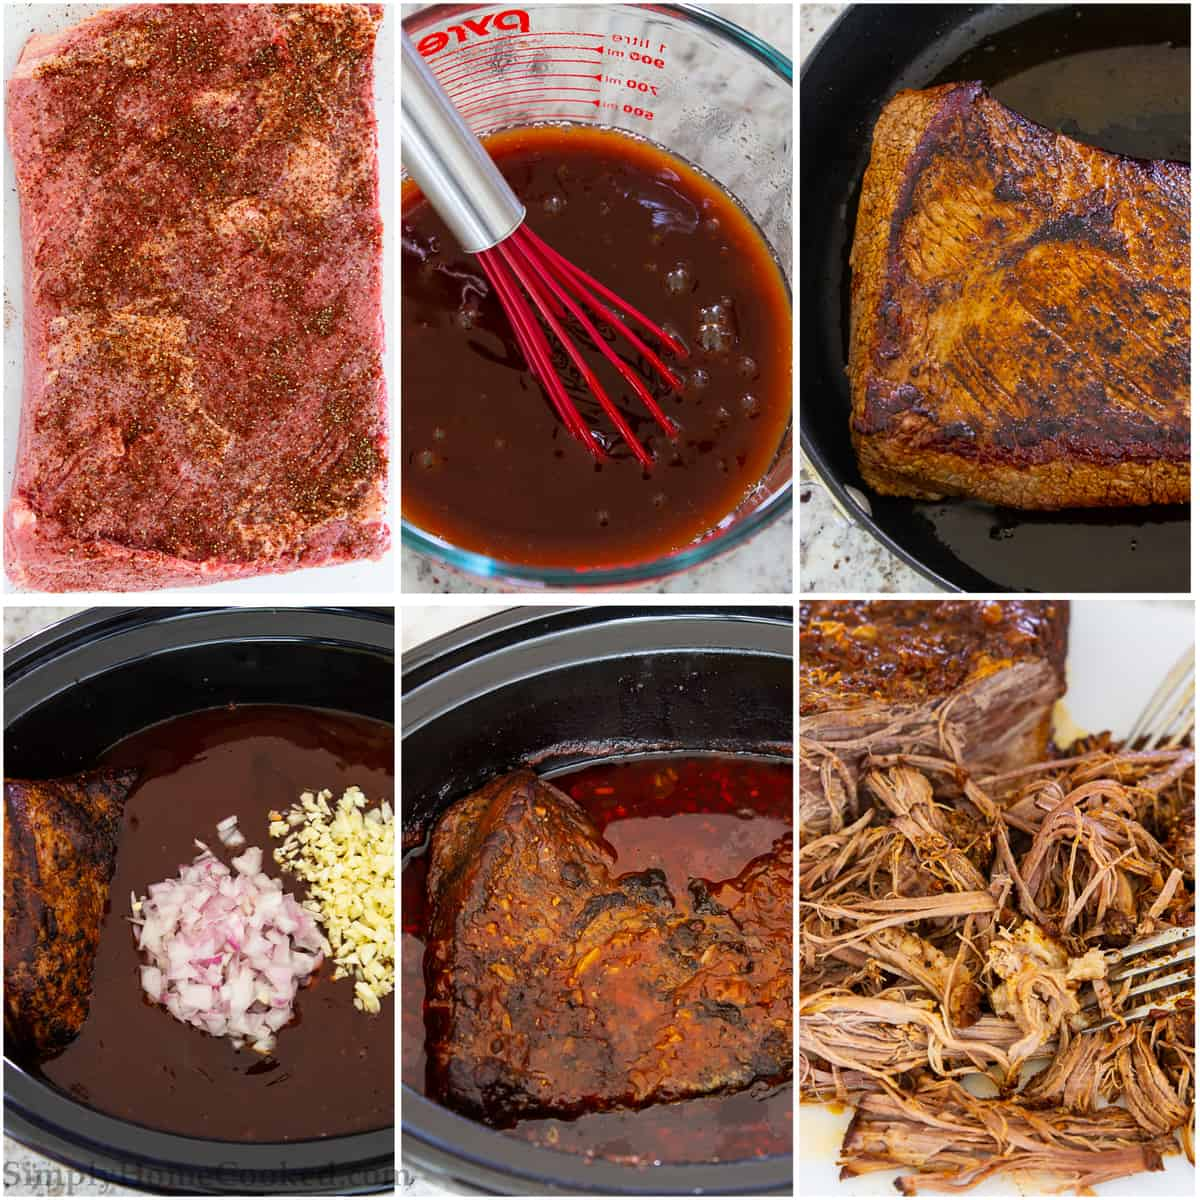 A dry rub is the base of any delicious beef brisket sandwich, and this step by step guide gives you just the right process to seal in flavors.